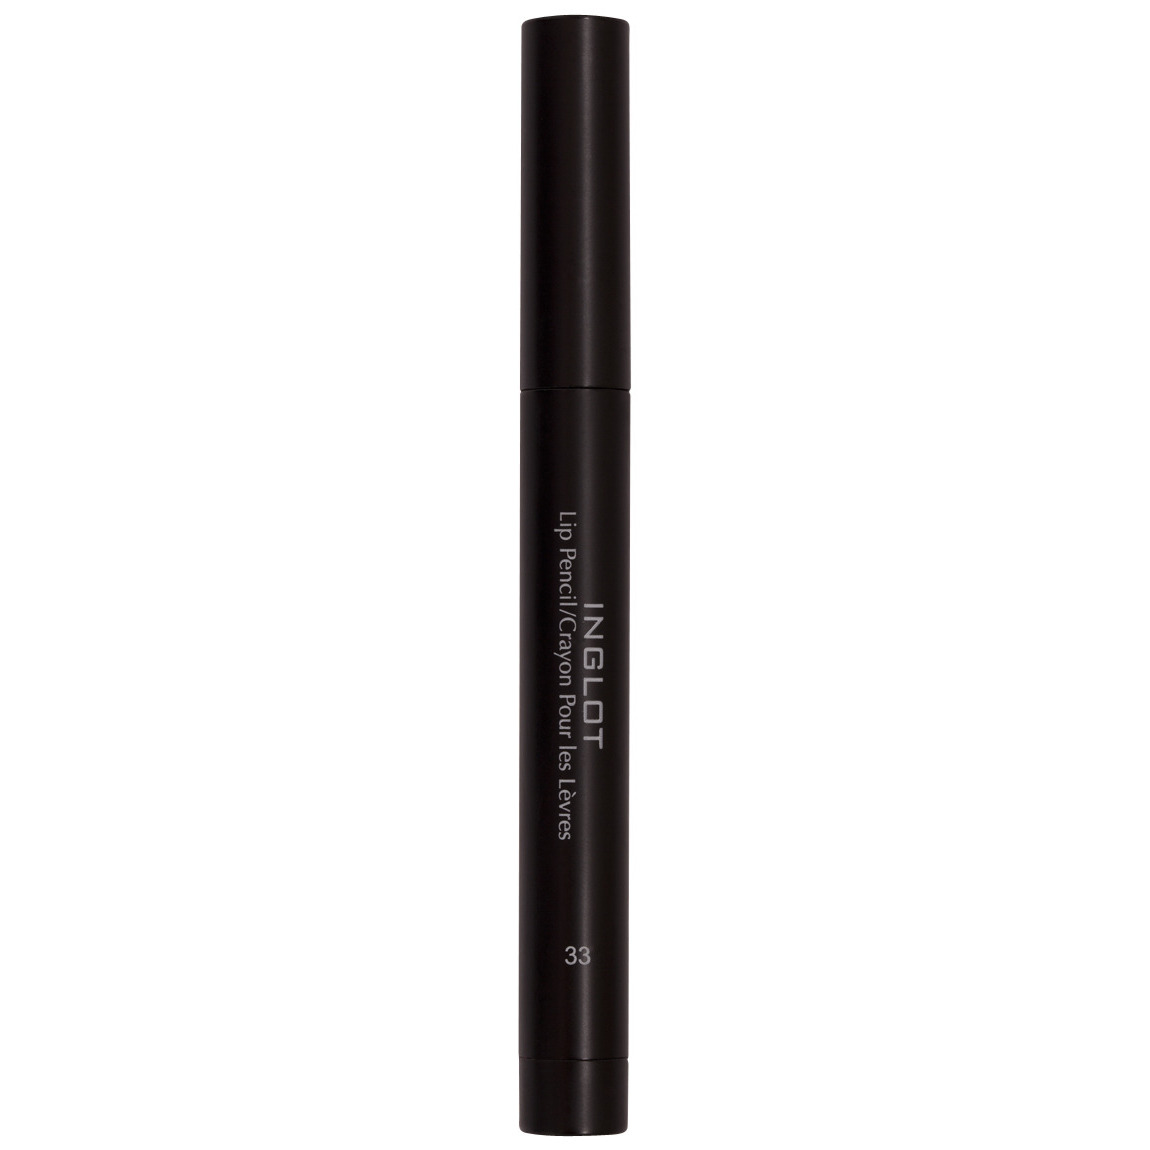 Inglot Cosmetics AMC Lip Pencil 34 Matte